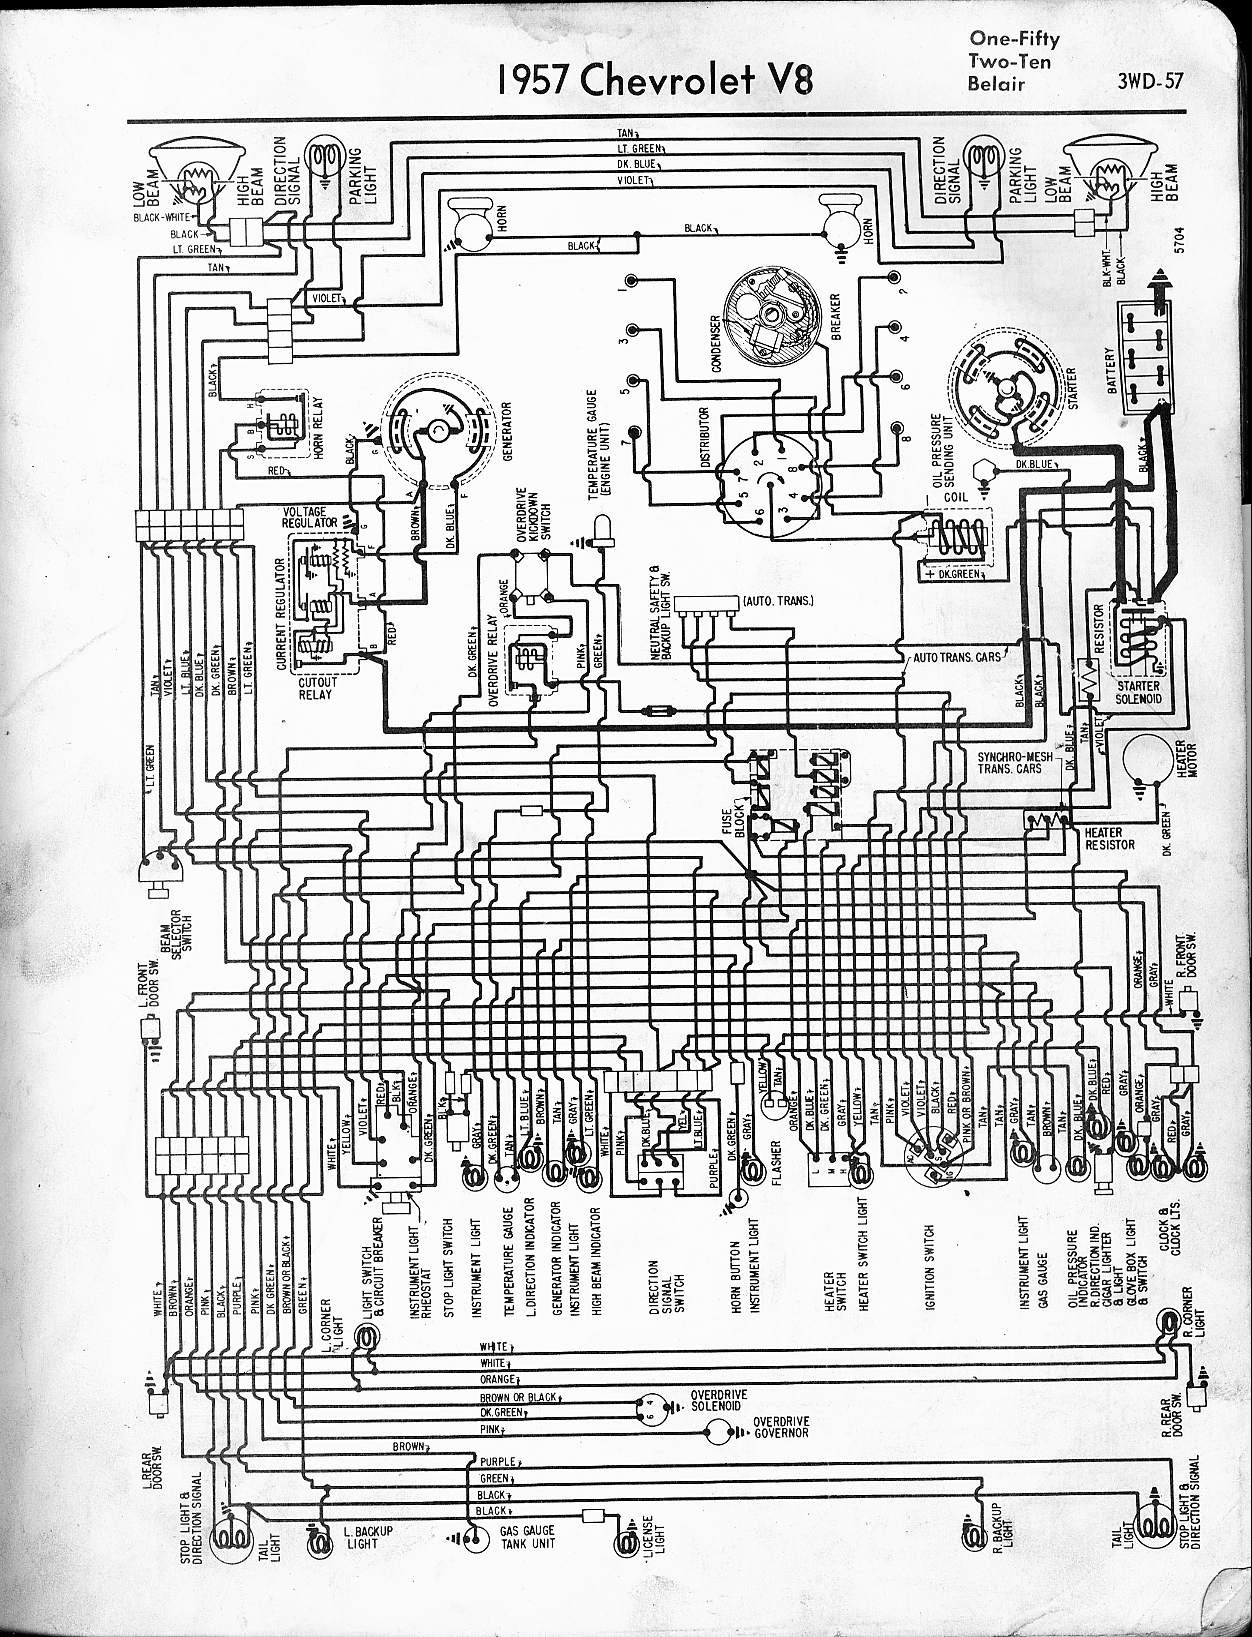 55 Chevy Fuse Box Location Wiring Diagram Theory Theory Zaafran It